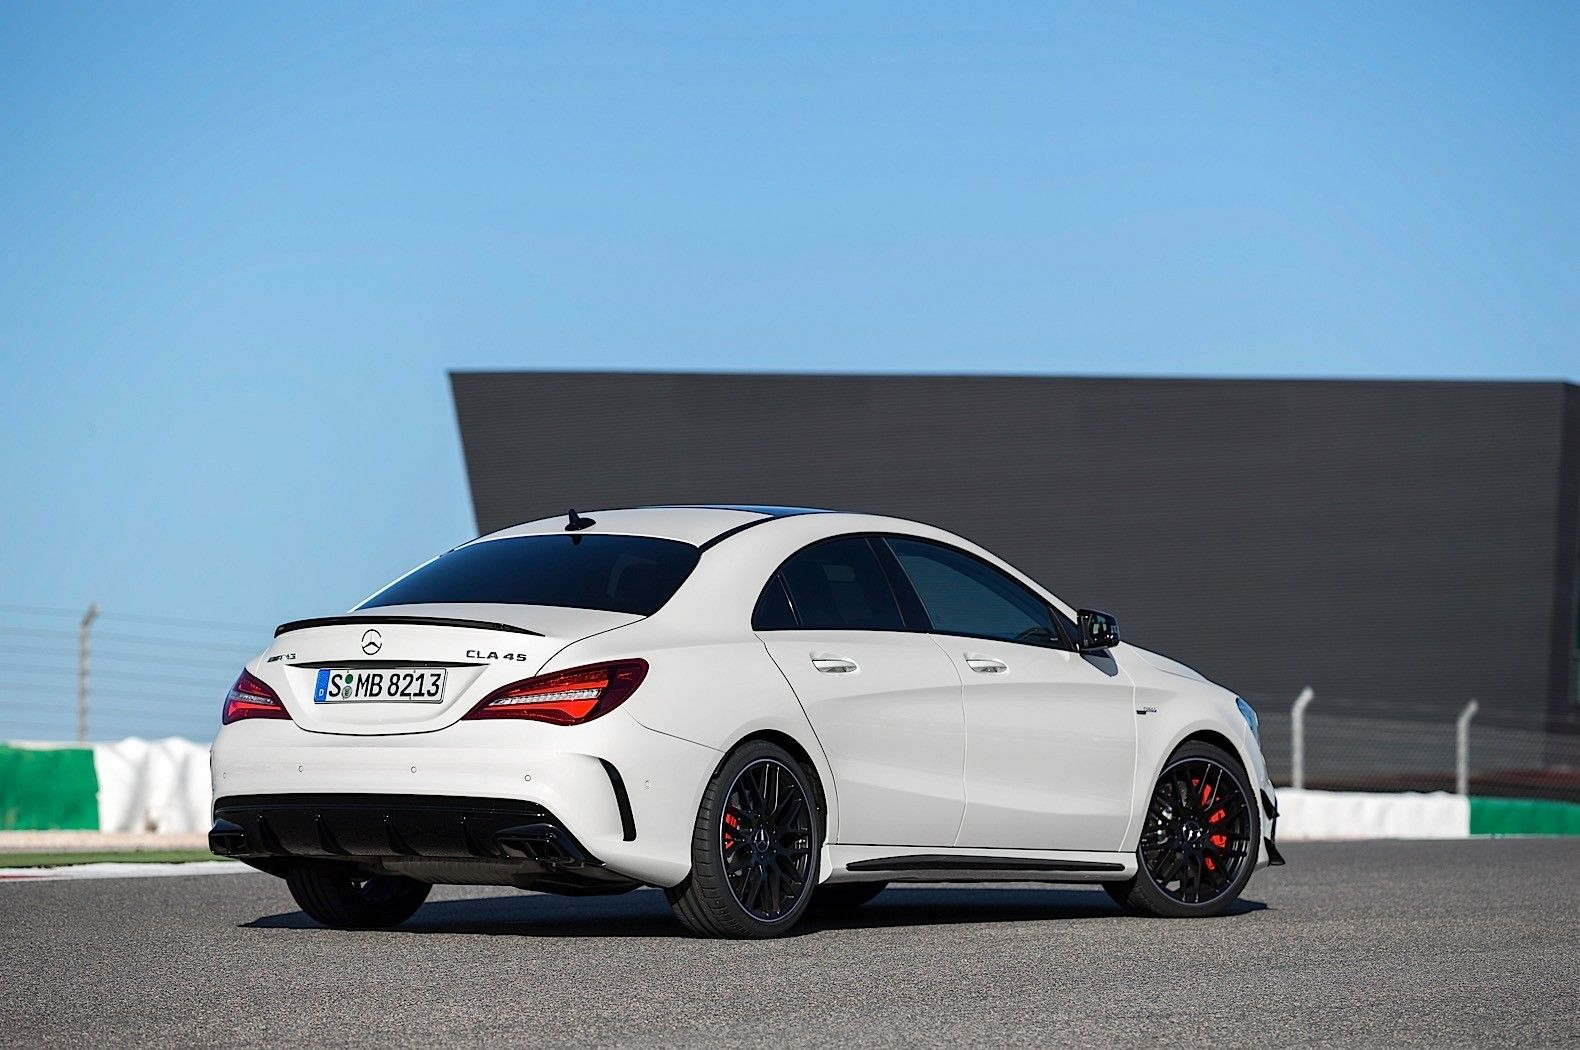 2017 mercedes amg c63 s coupe hd wallpapers interior exterior photos aleksandr pinterest mercedes amg hd wallpaper and coupe